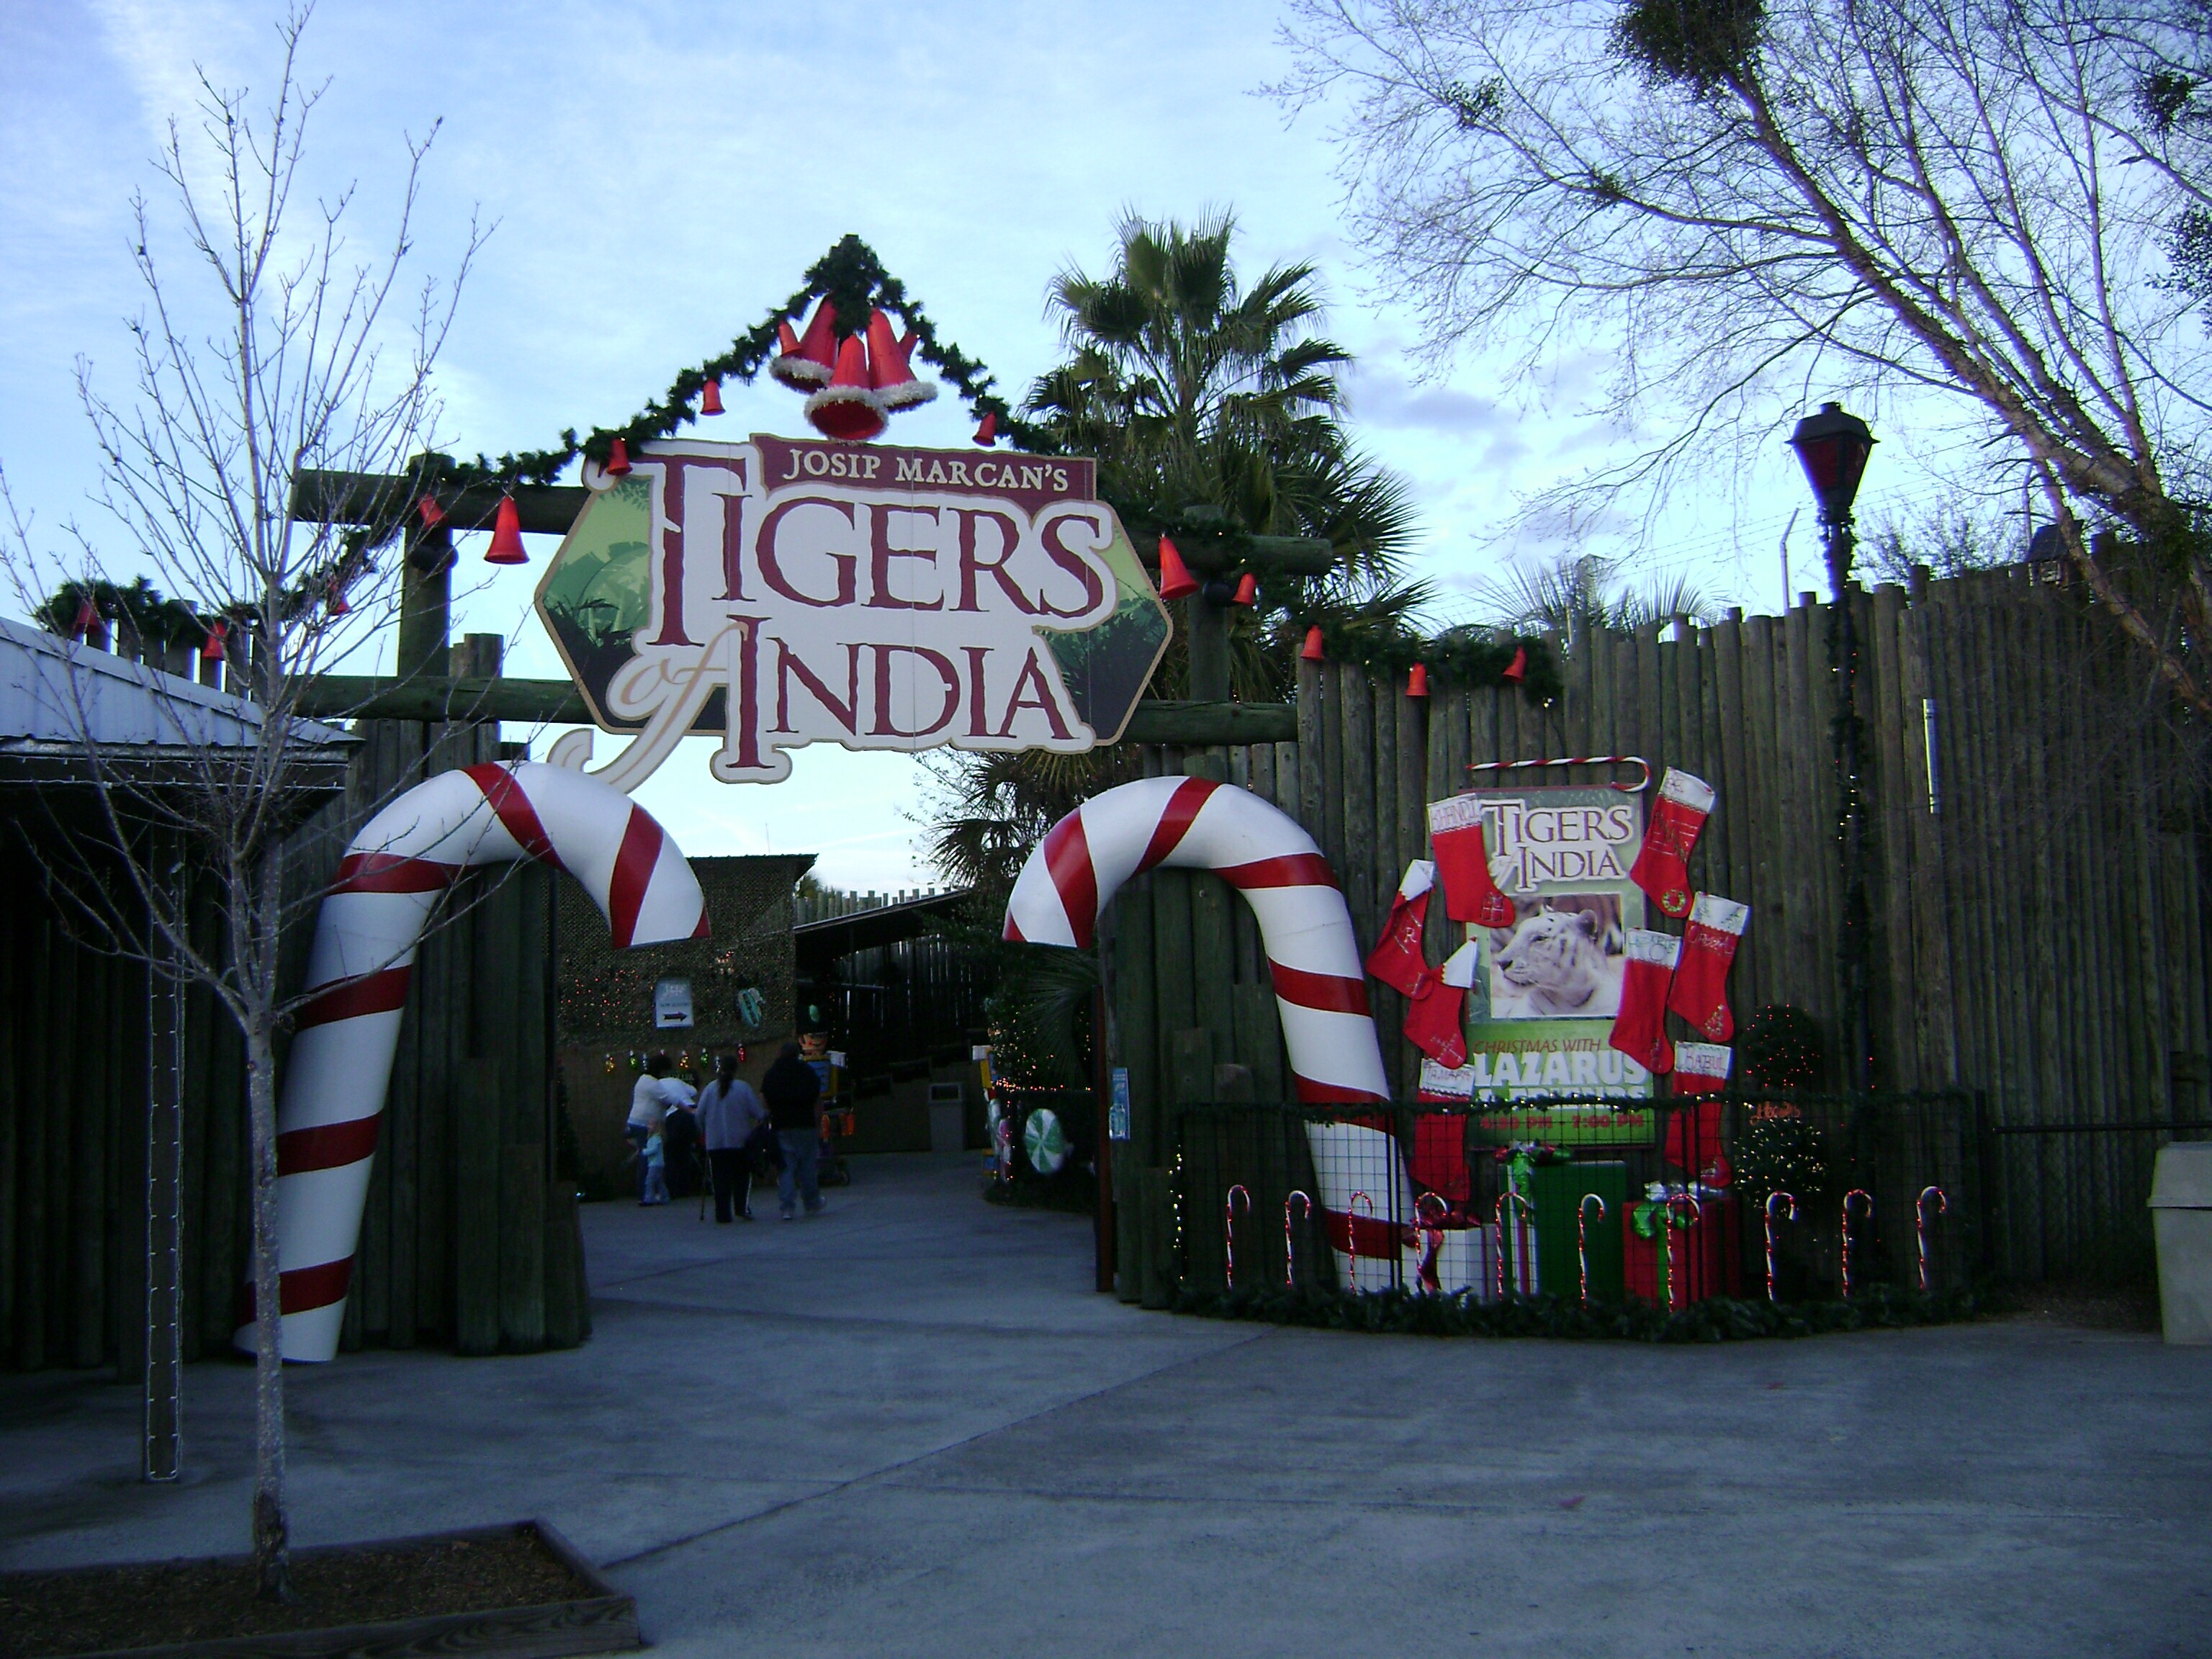 File:Wild Adventures Christmas Decorations 2.jpg - Wikimedia Commons